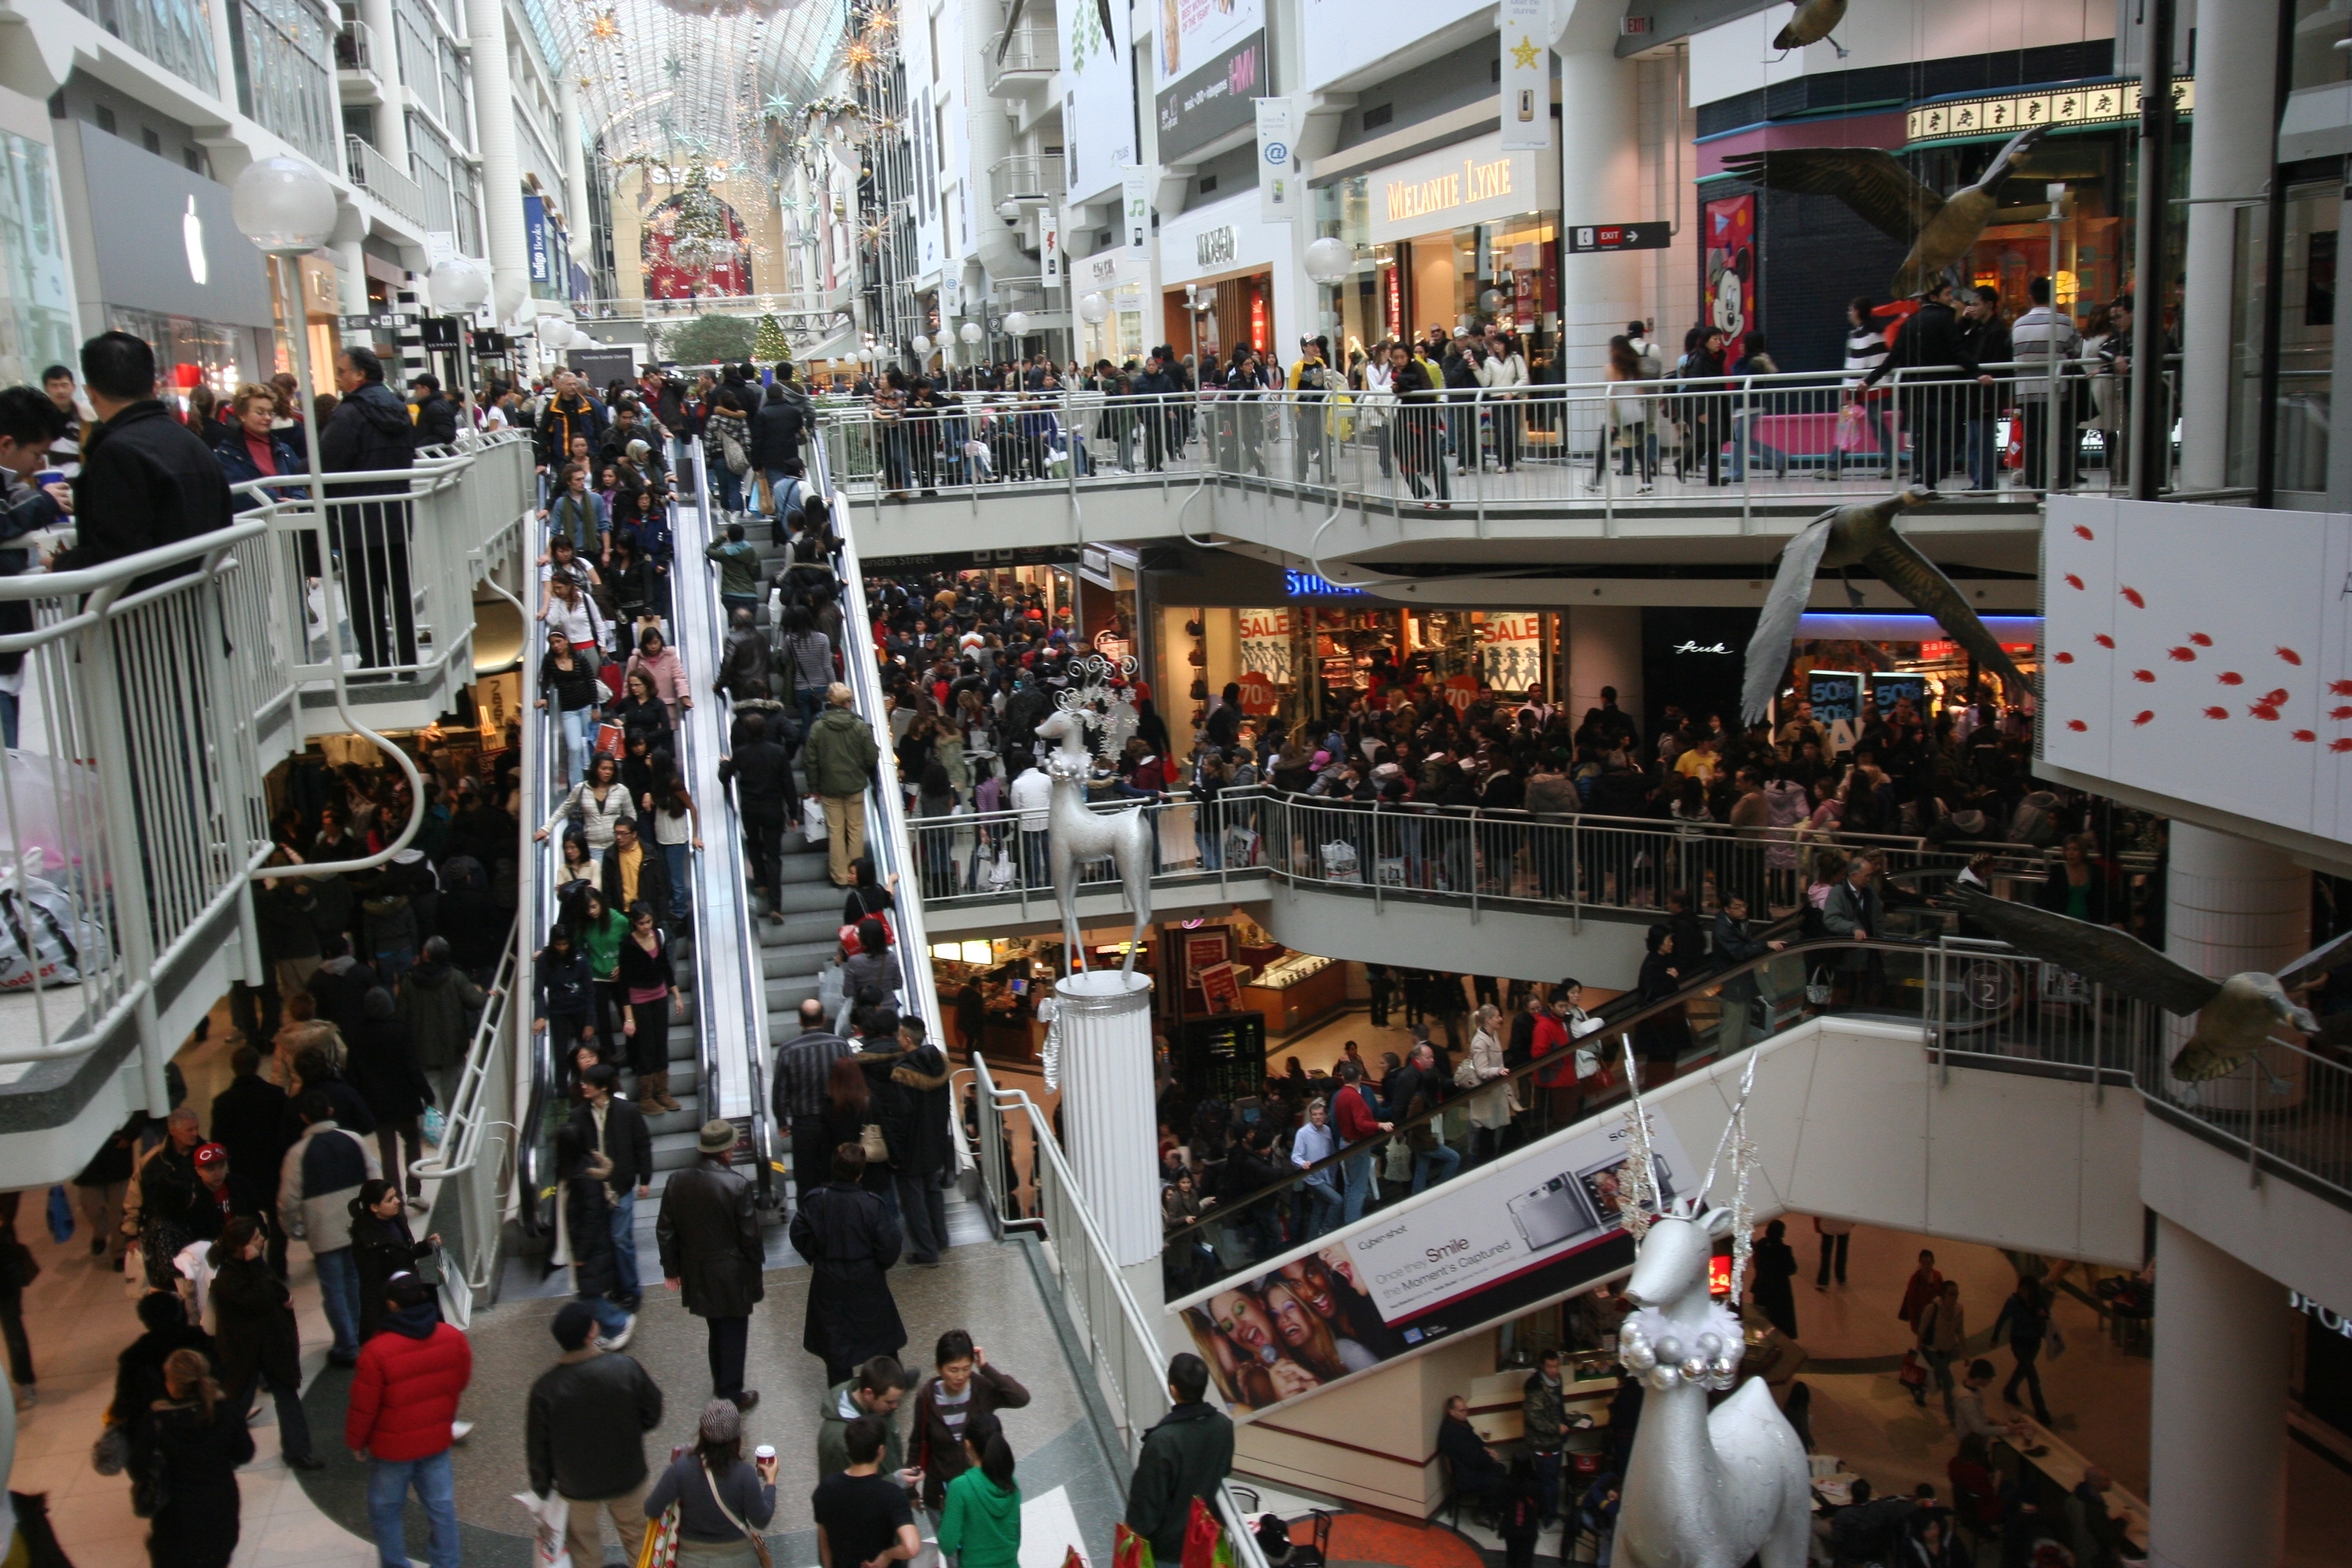 Extra security for Hampshire shopping centres ahead of extended Xmas hours